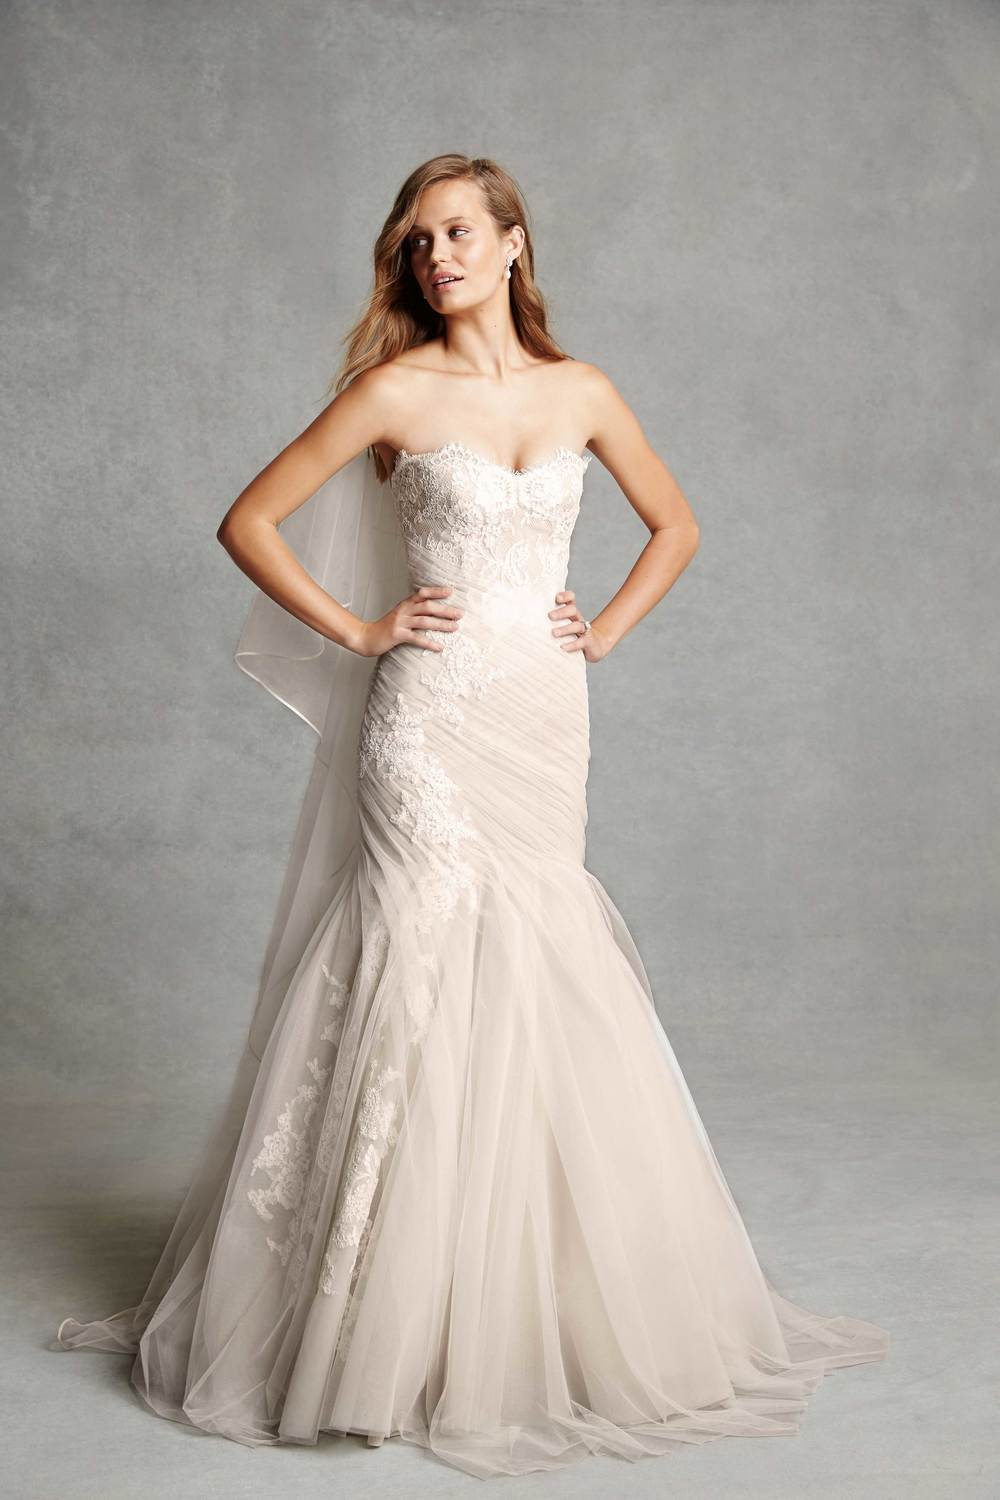 BLISS Monique Lhuillier BL1516 Strapless Sweetheart Lace Wedding Dress Tampa Bridal Shop